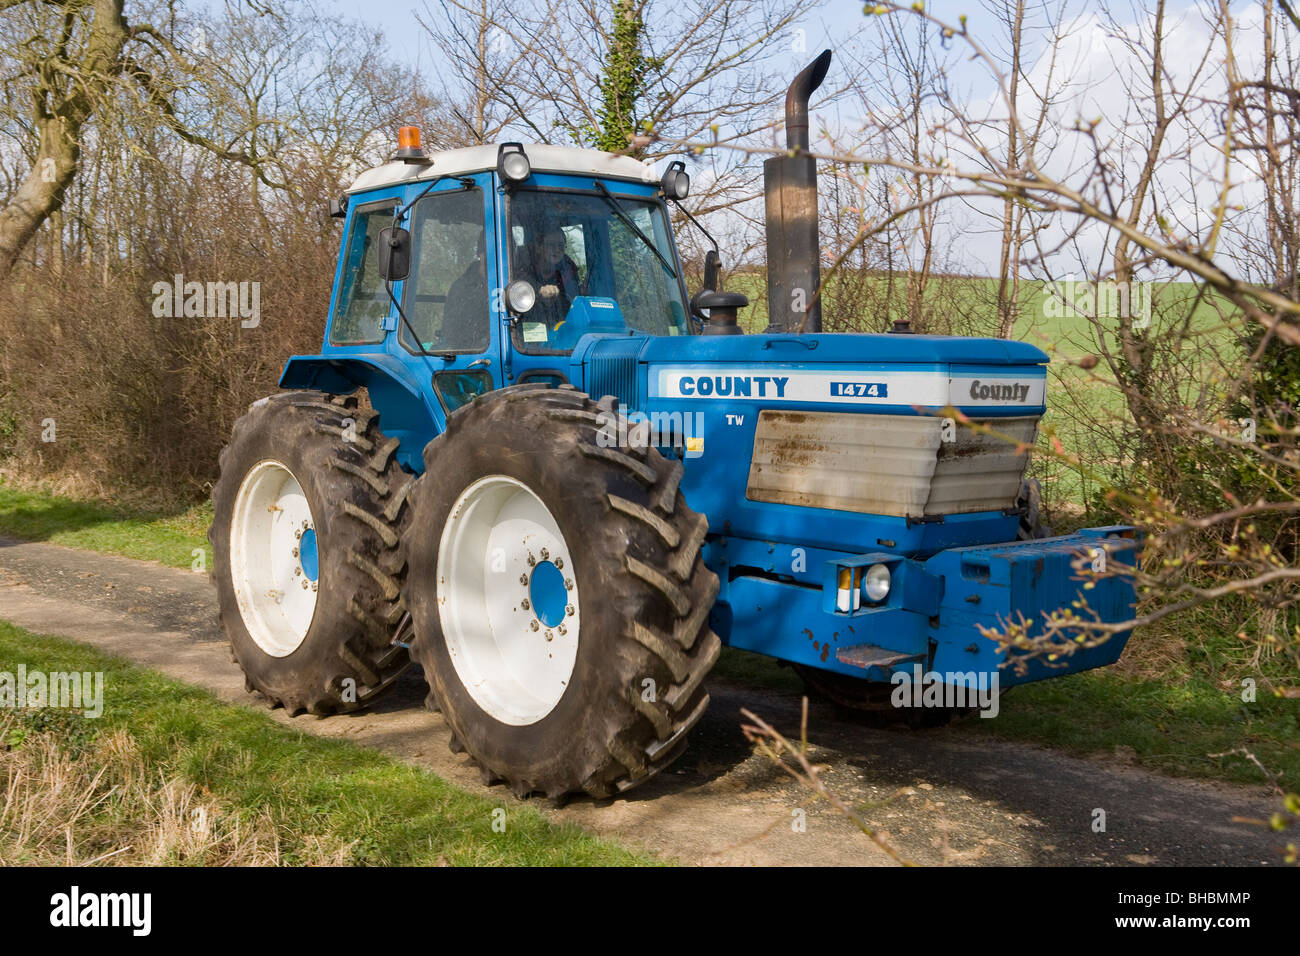 Ford County 1474 Tractor